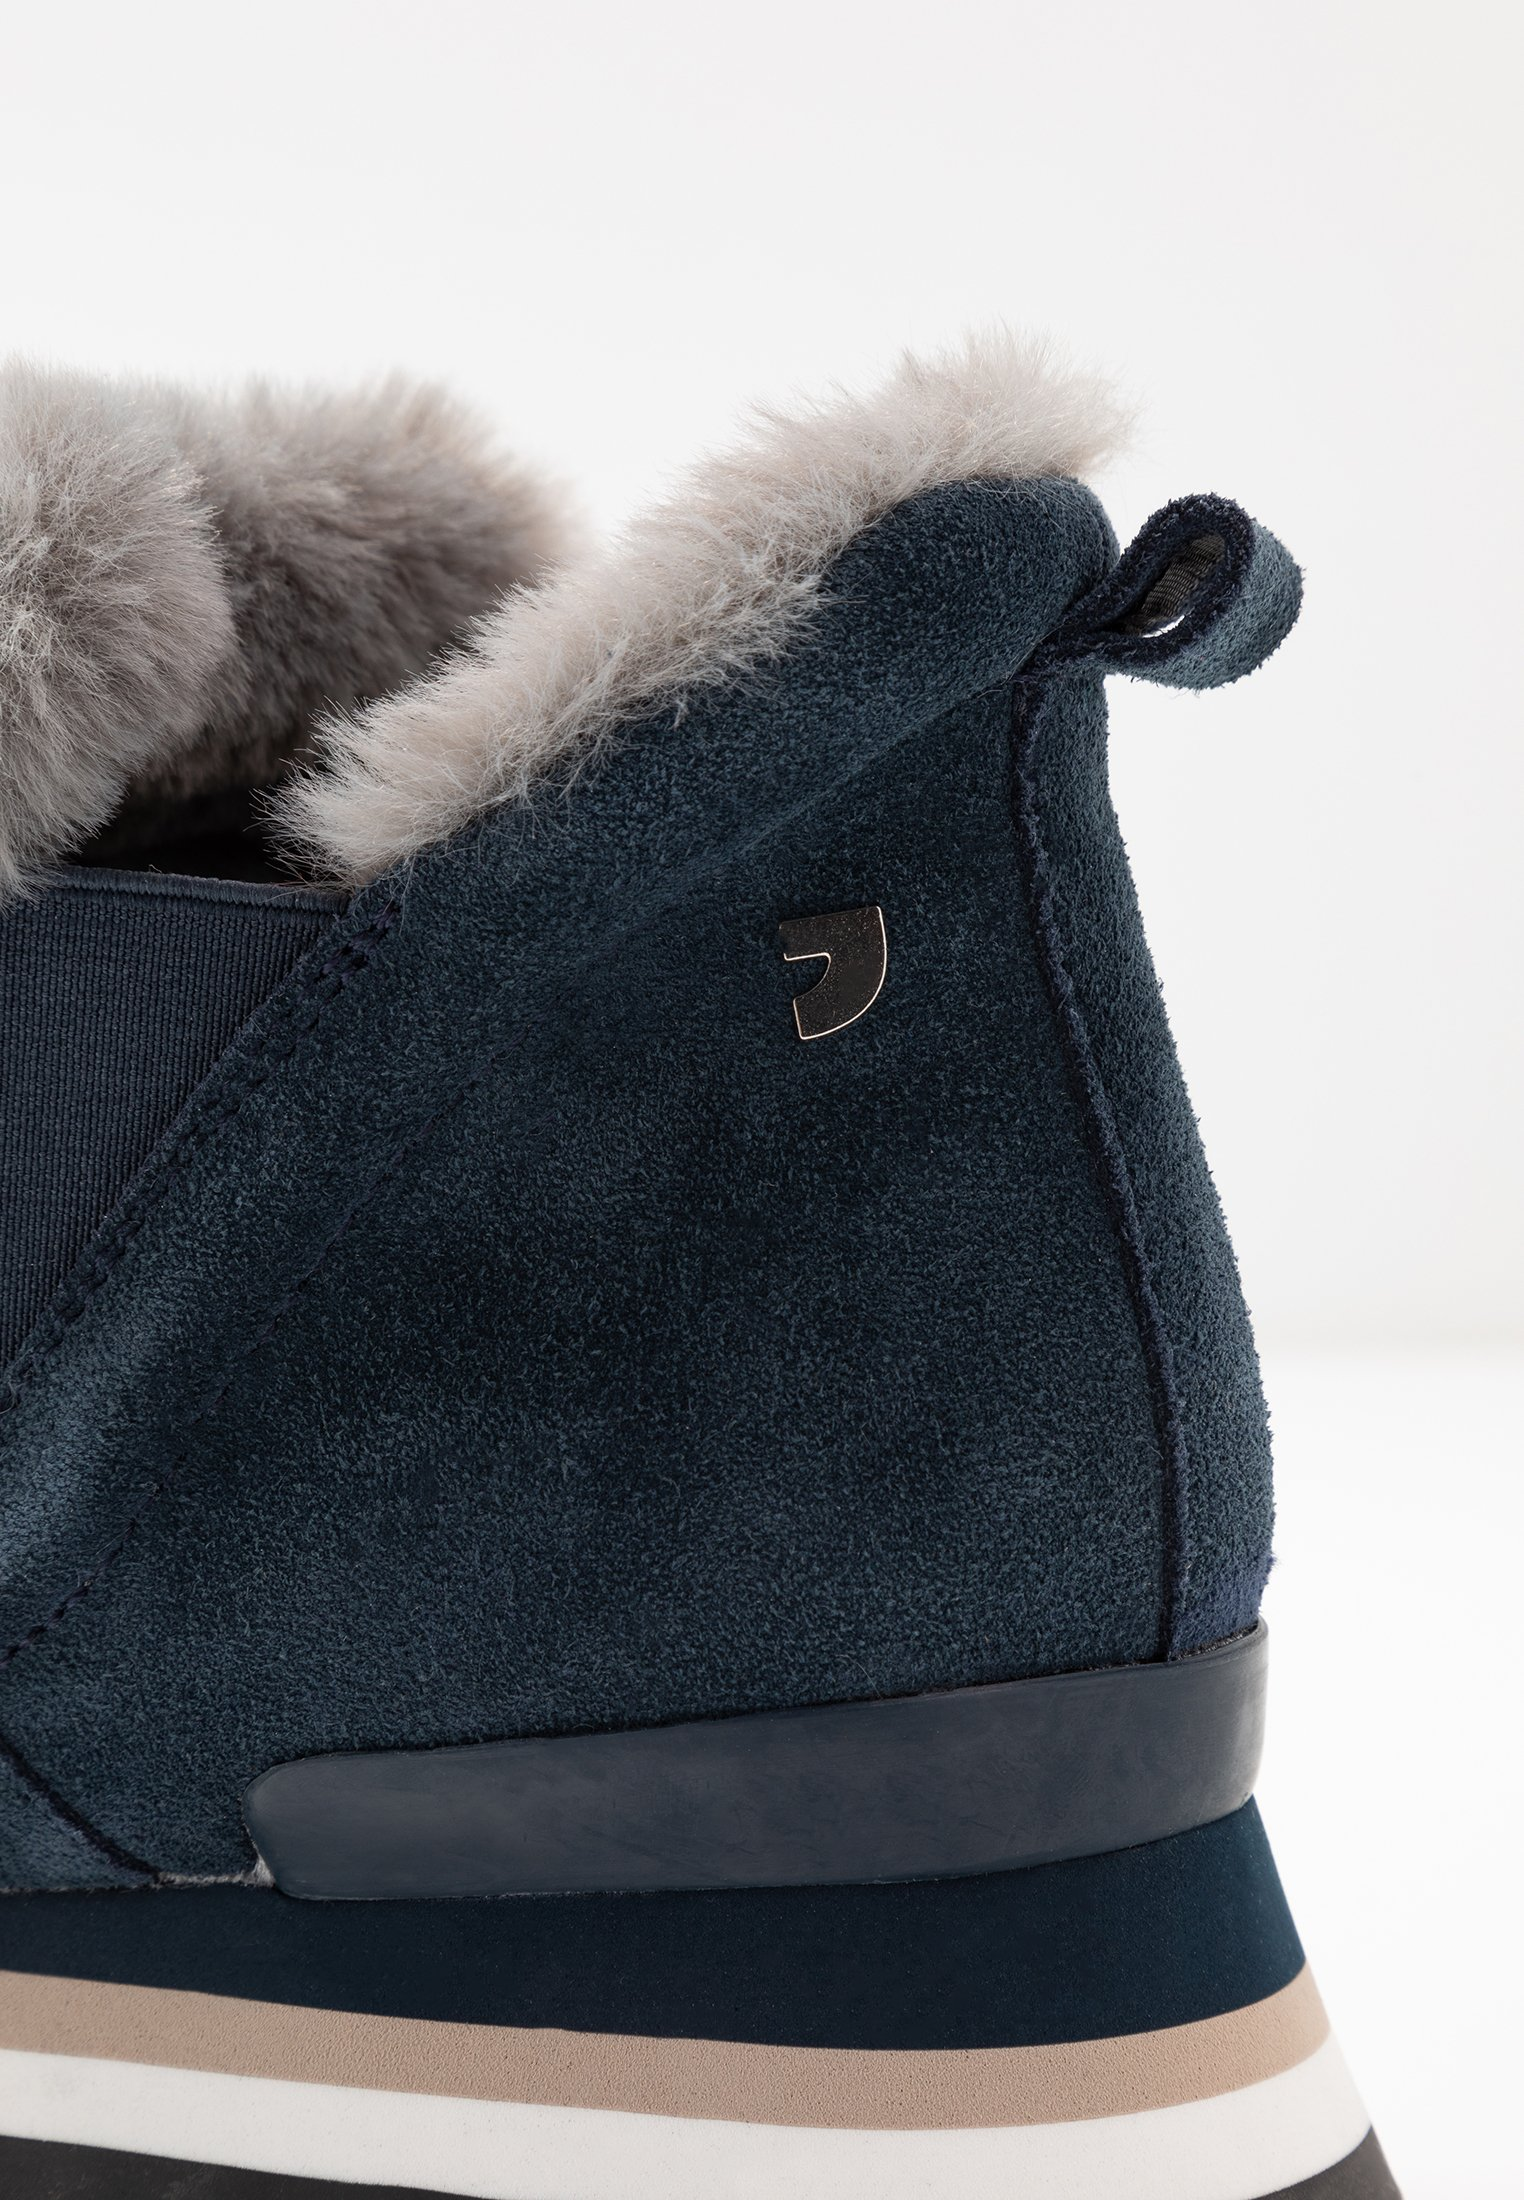 Cheapest Cheapest Gioseppo Ankle boots - navy | women's shoes 2020 iezuj